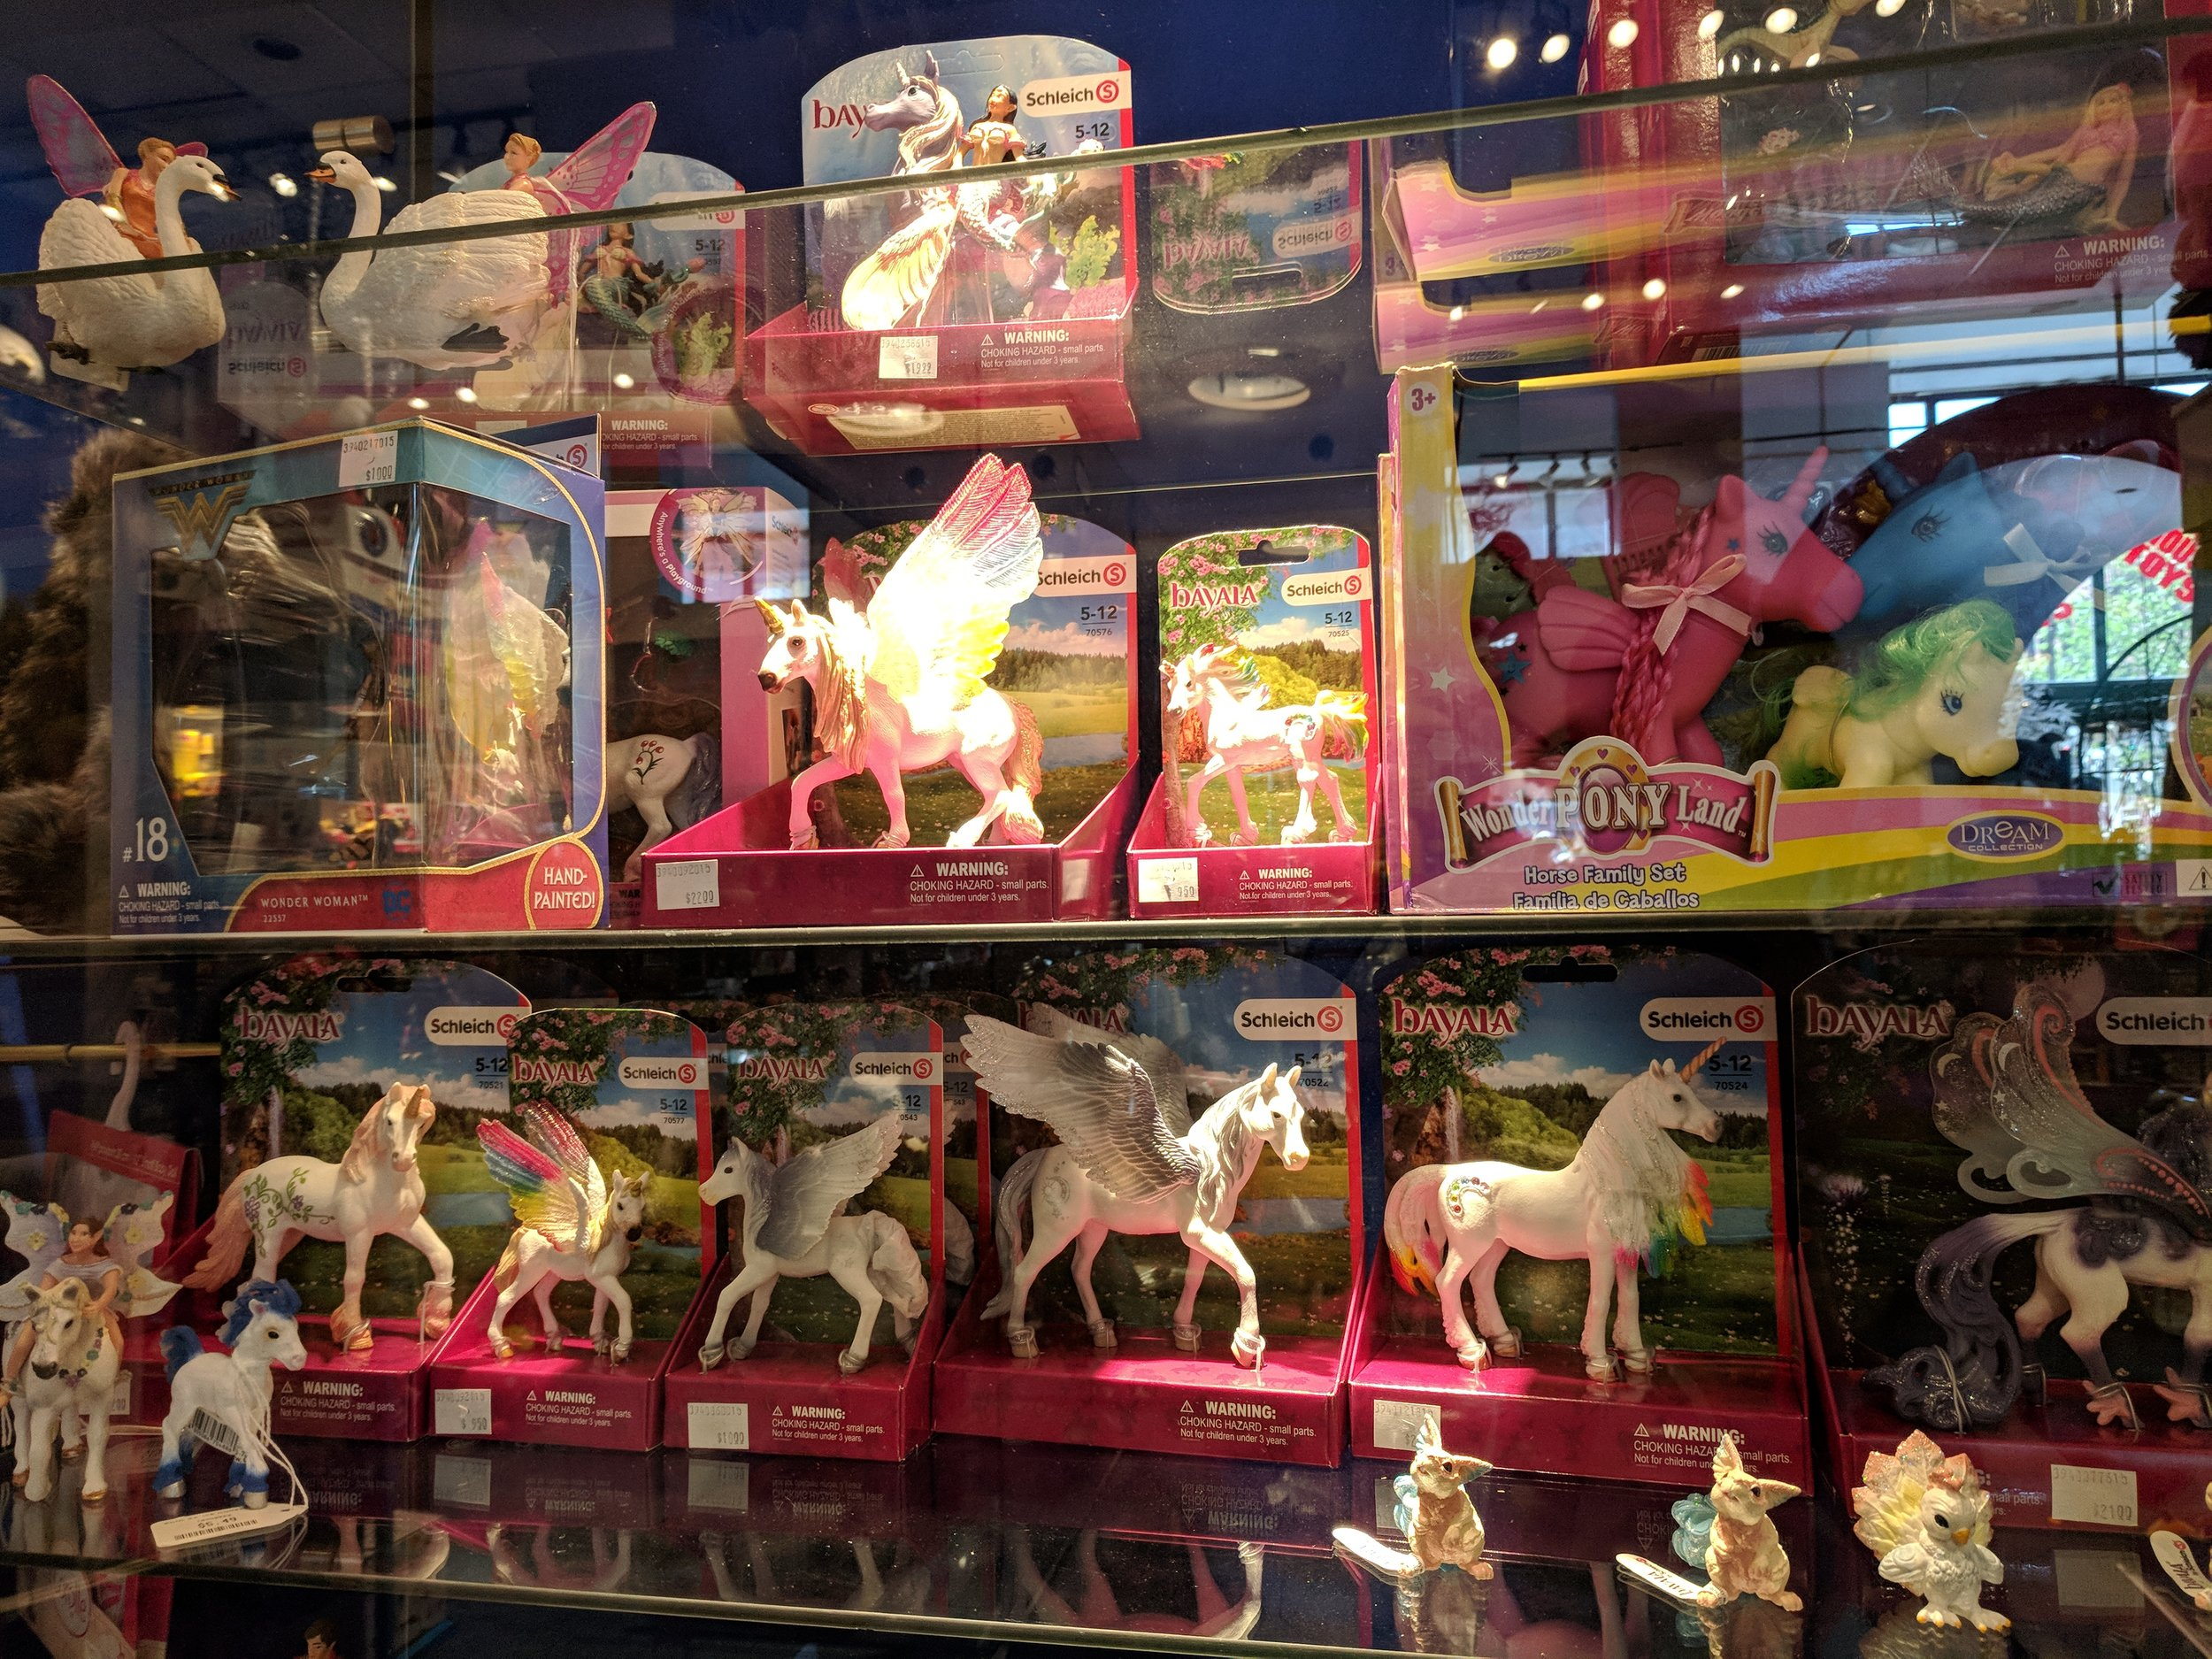 Pink unicorns and baby dolls for days